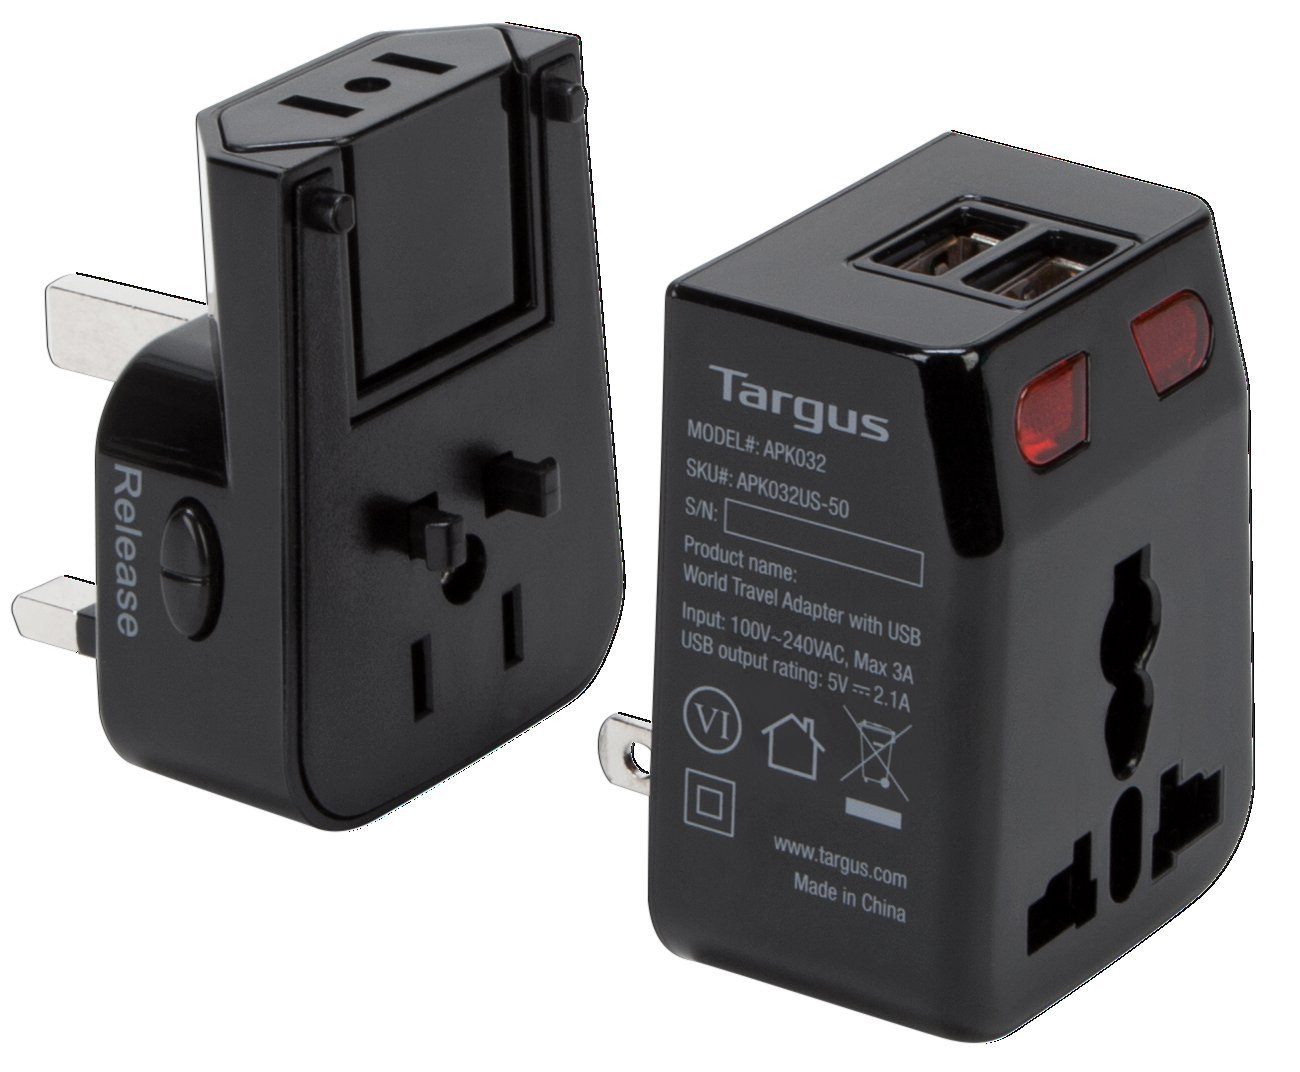 Targus World Travel Power Adapter with Dual USB Charging Ports for Laptops, Phones, Tablets, or Other Mobile Devices (APK032US) by Targus (Image #4)